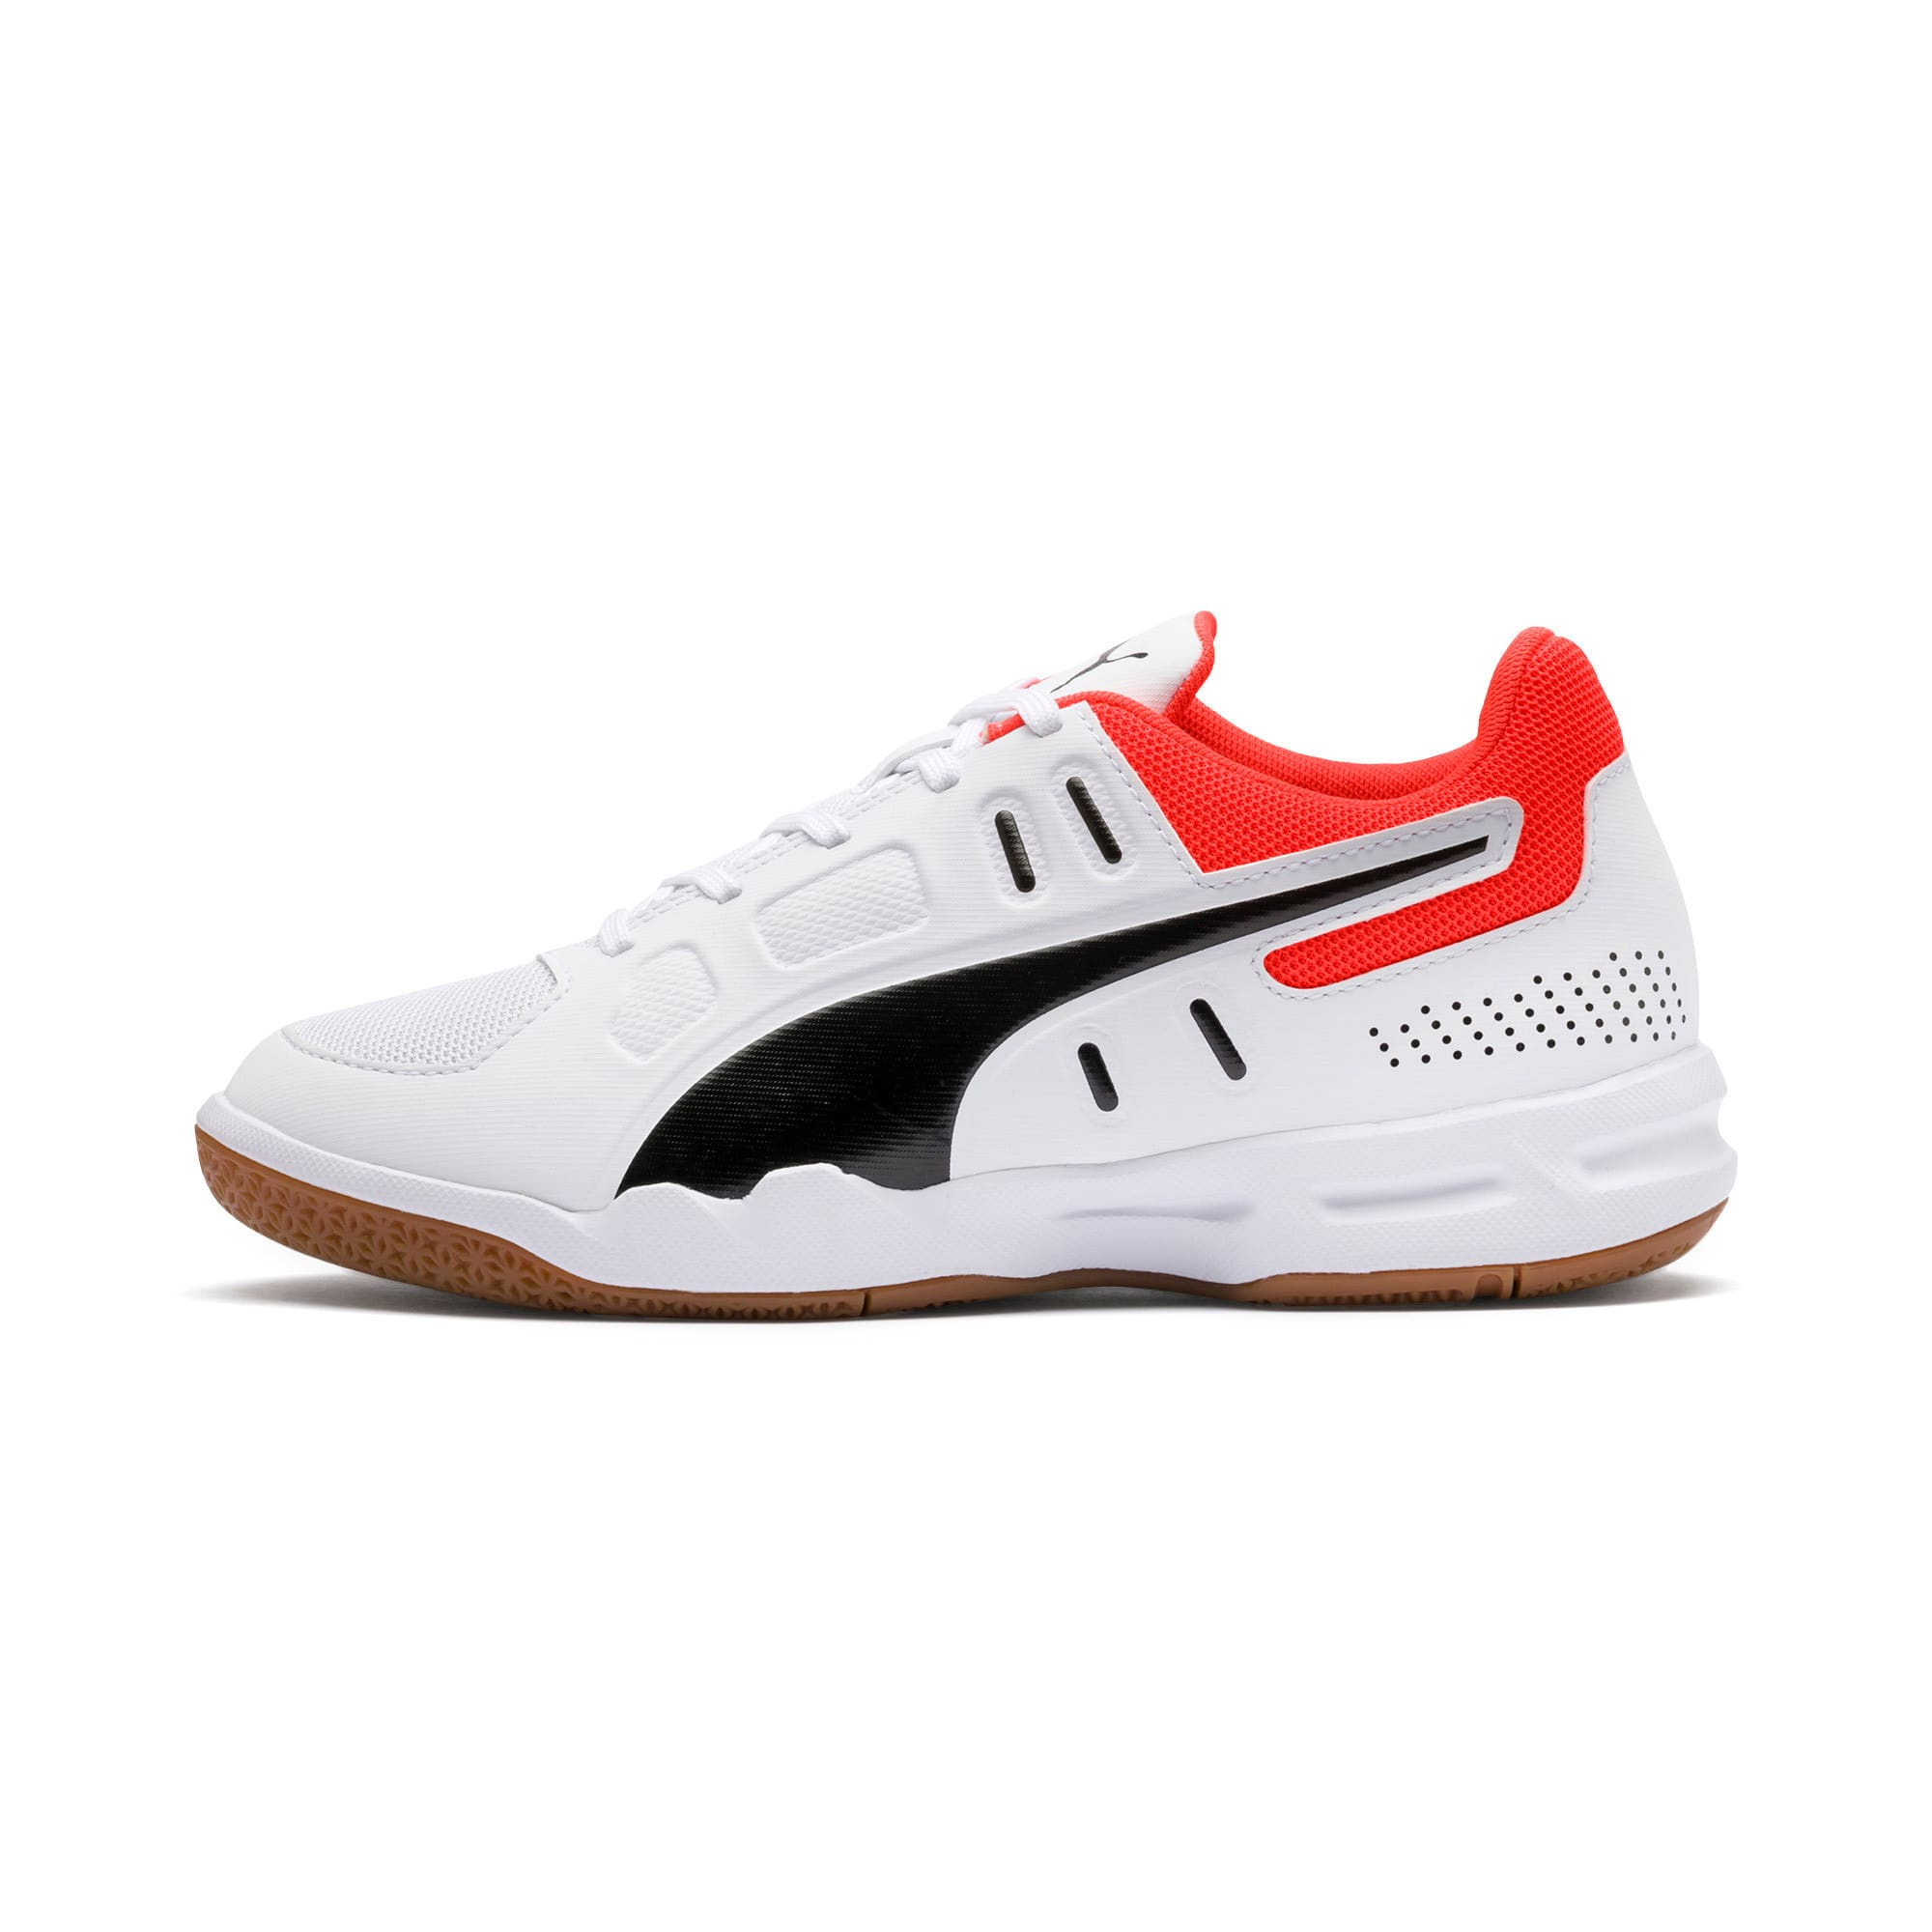 Thumbnail 1 of Auriz Youth Trainers, White-Black-Nrgy Red-Gum, medium